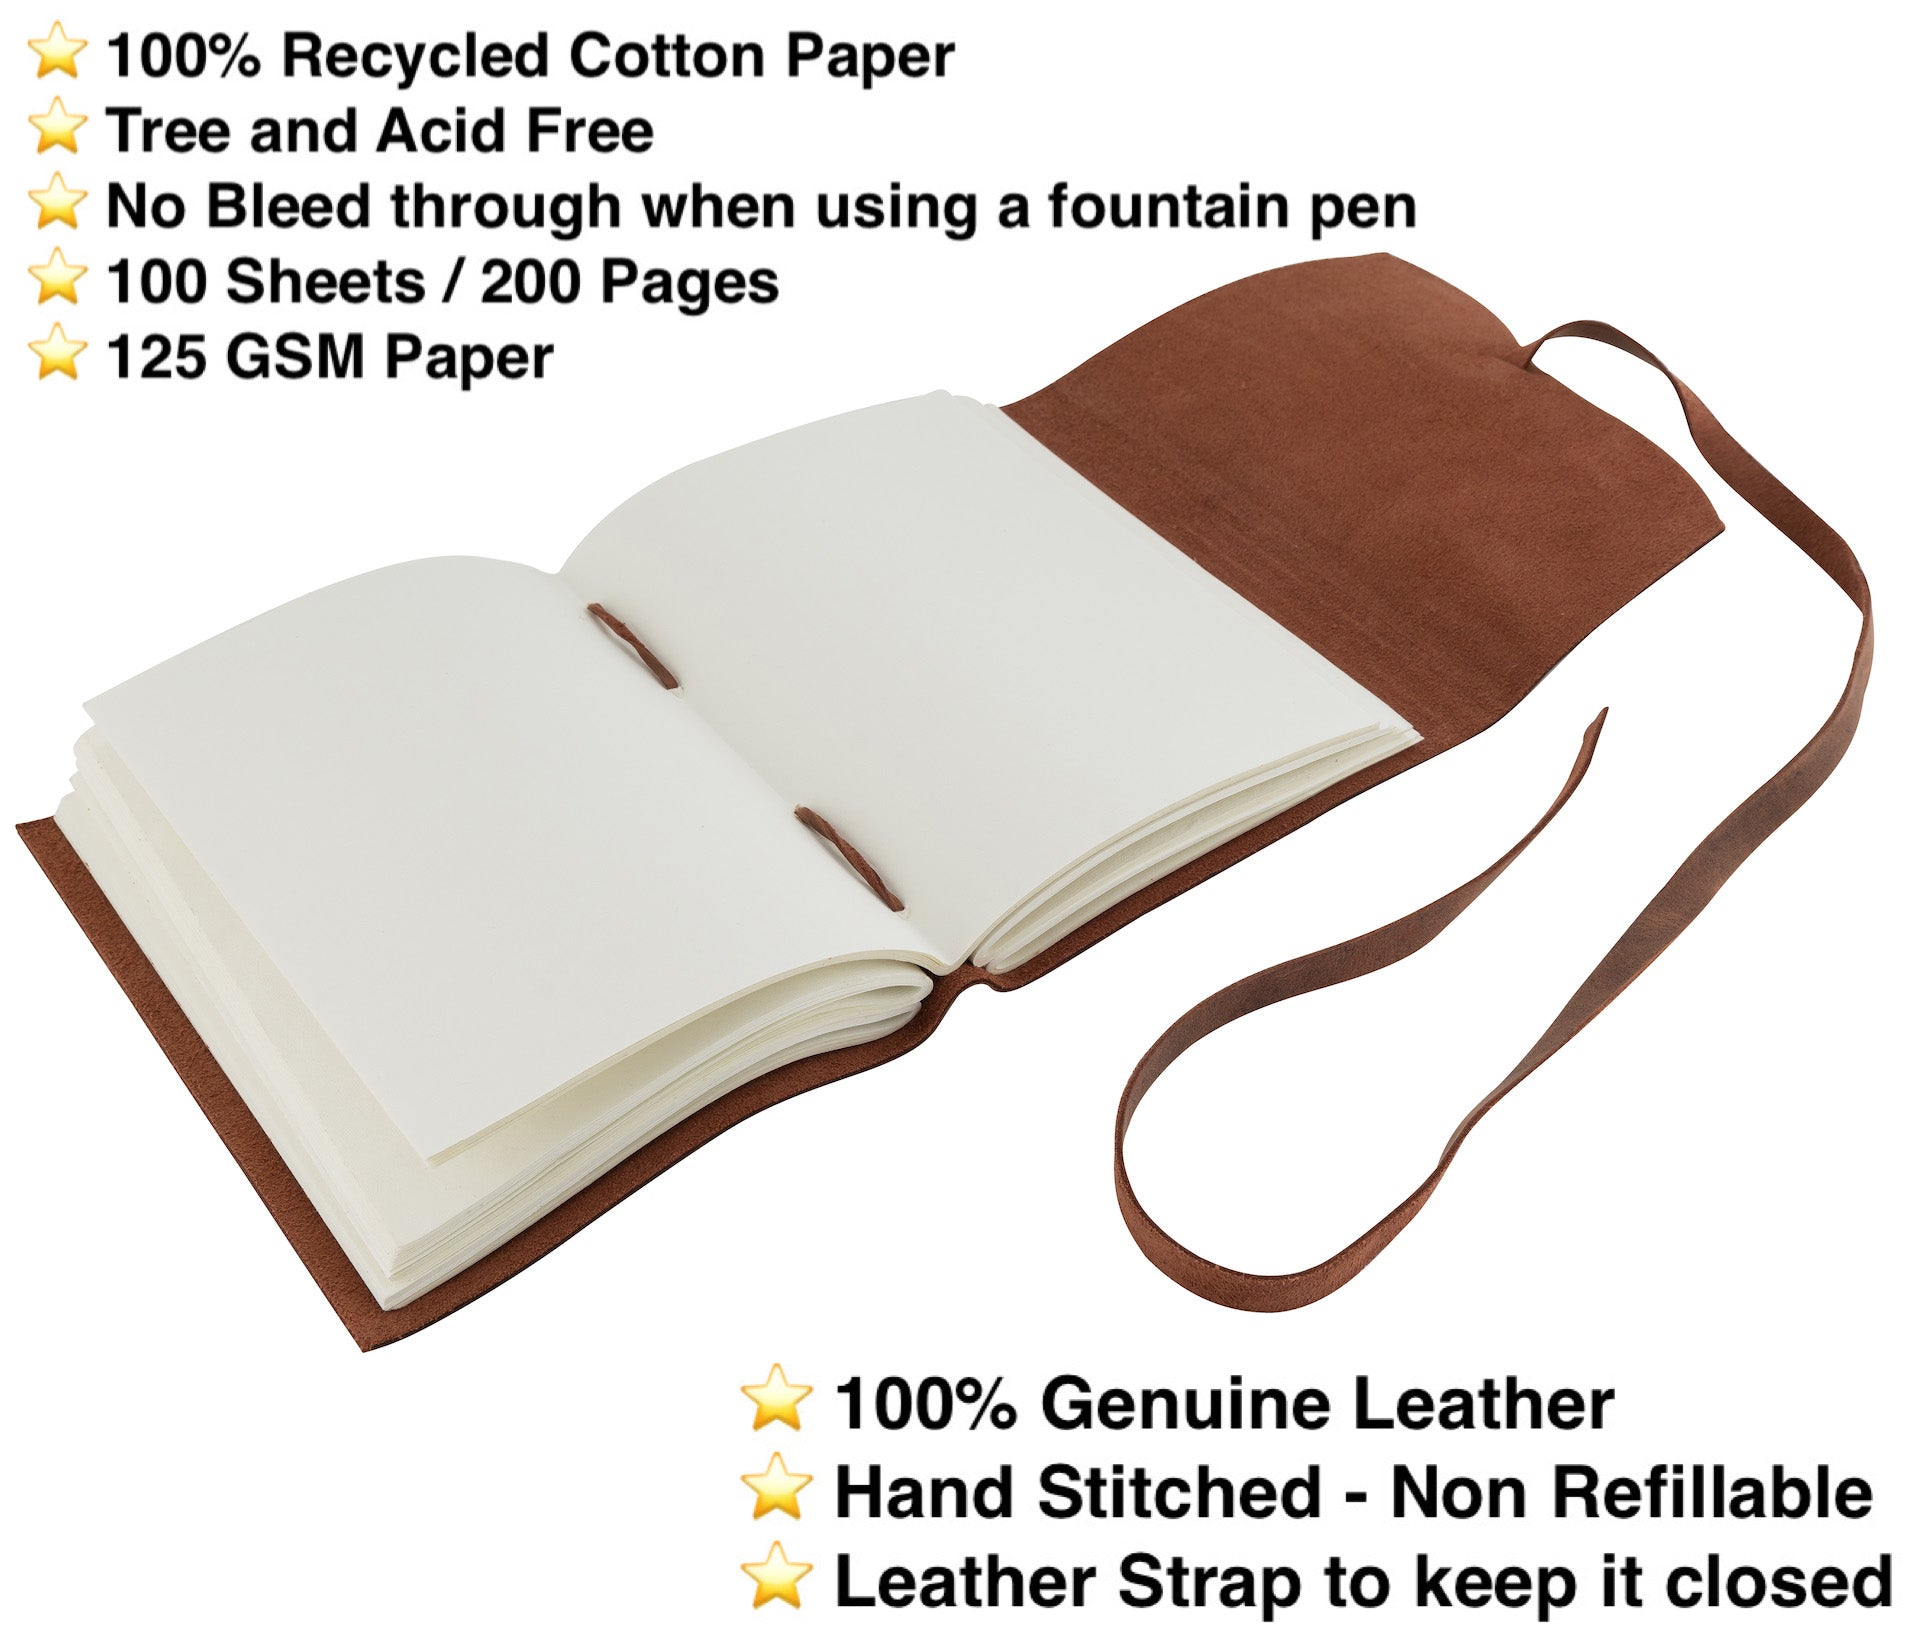 Tuk Tuk Press® Handmade Leather Flap Journal, 200 Thick Unlined Recycled Cotton Pages